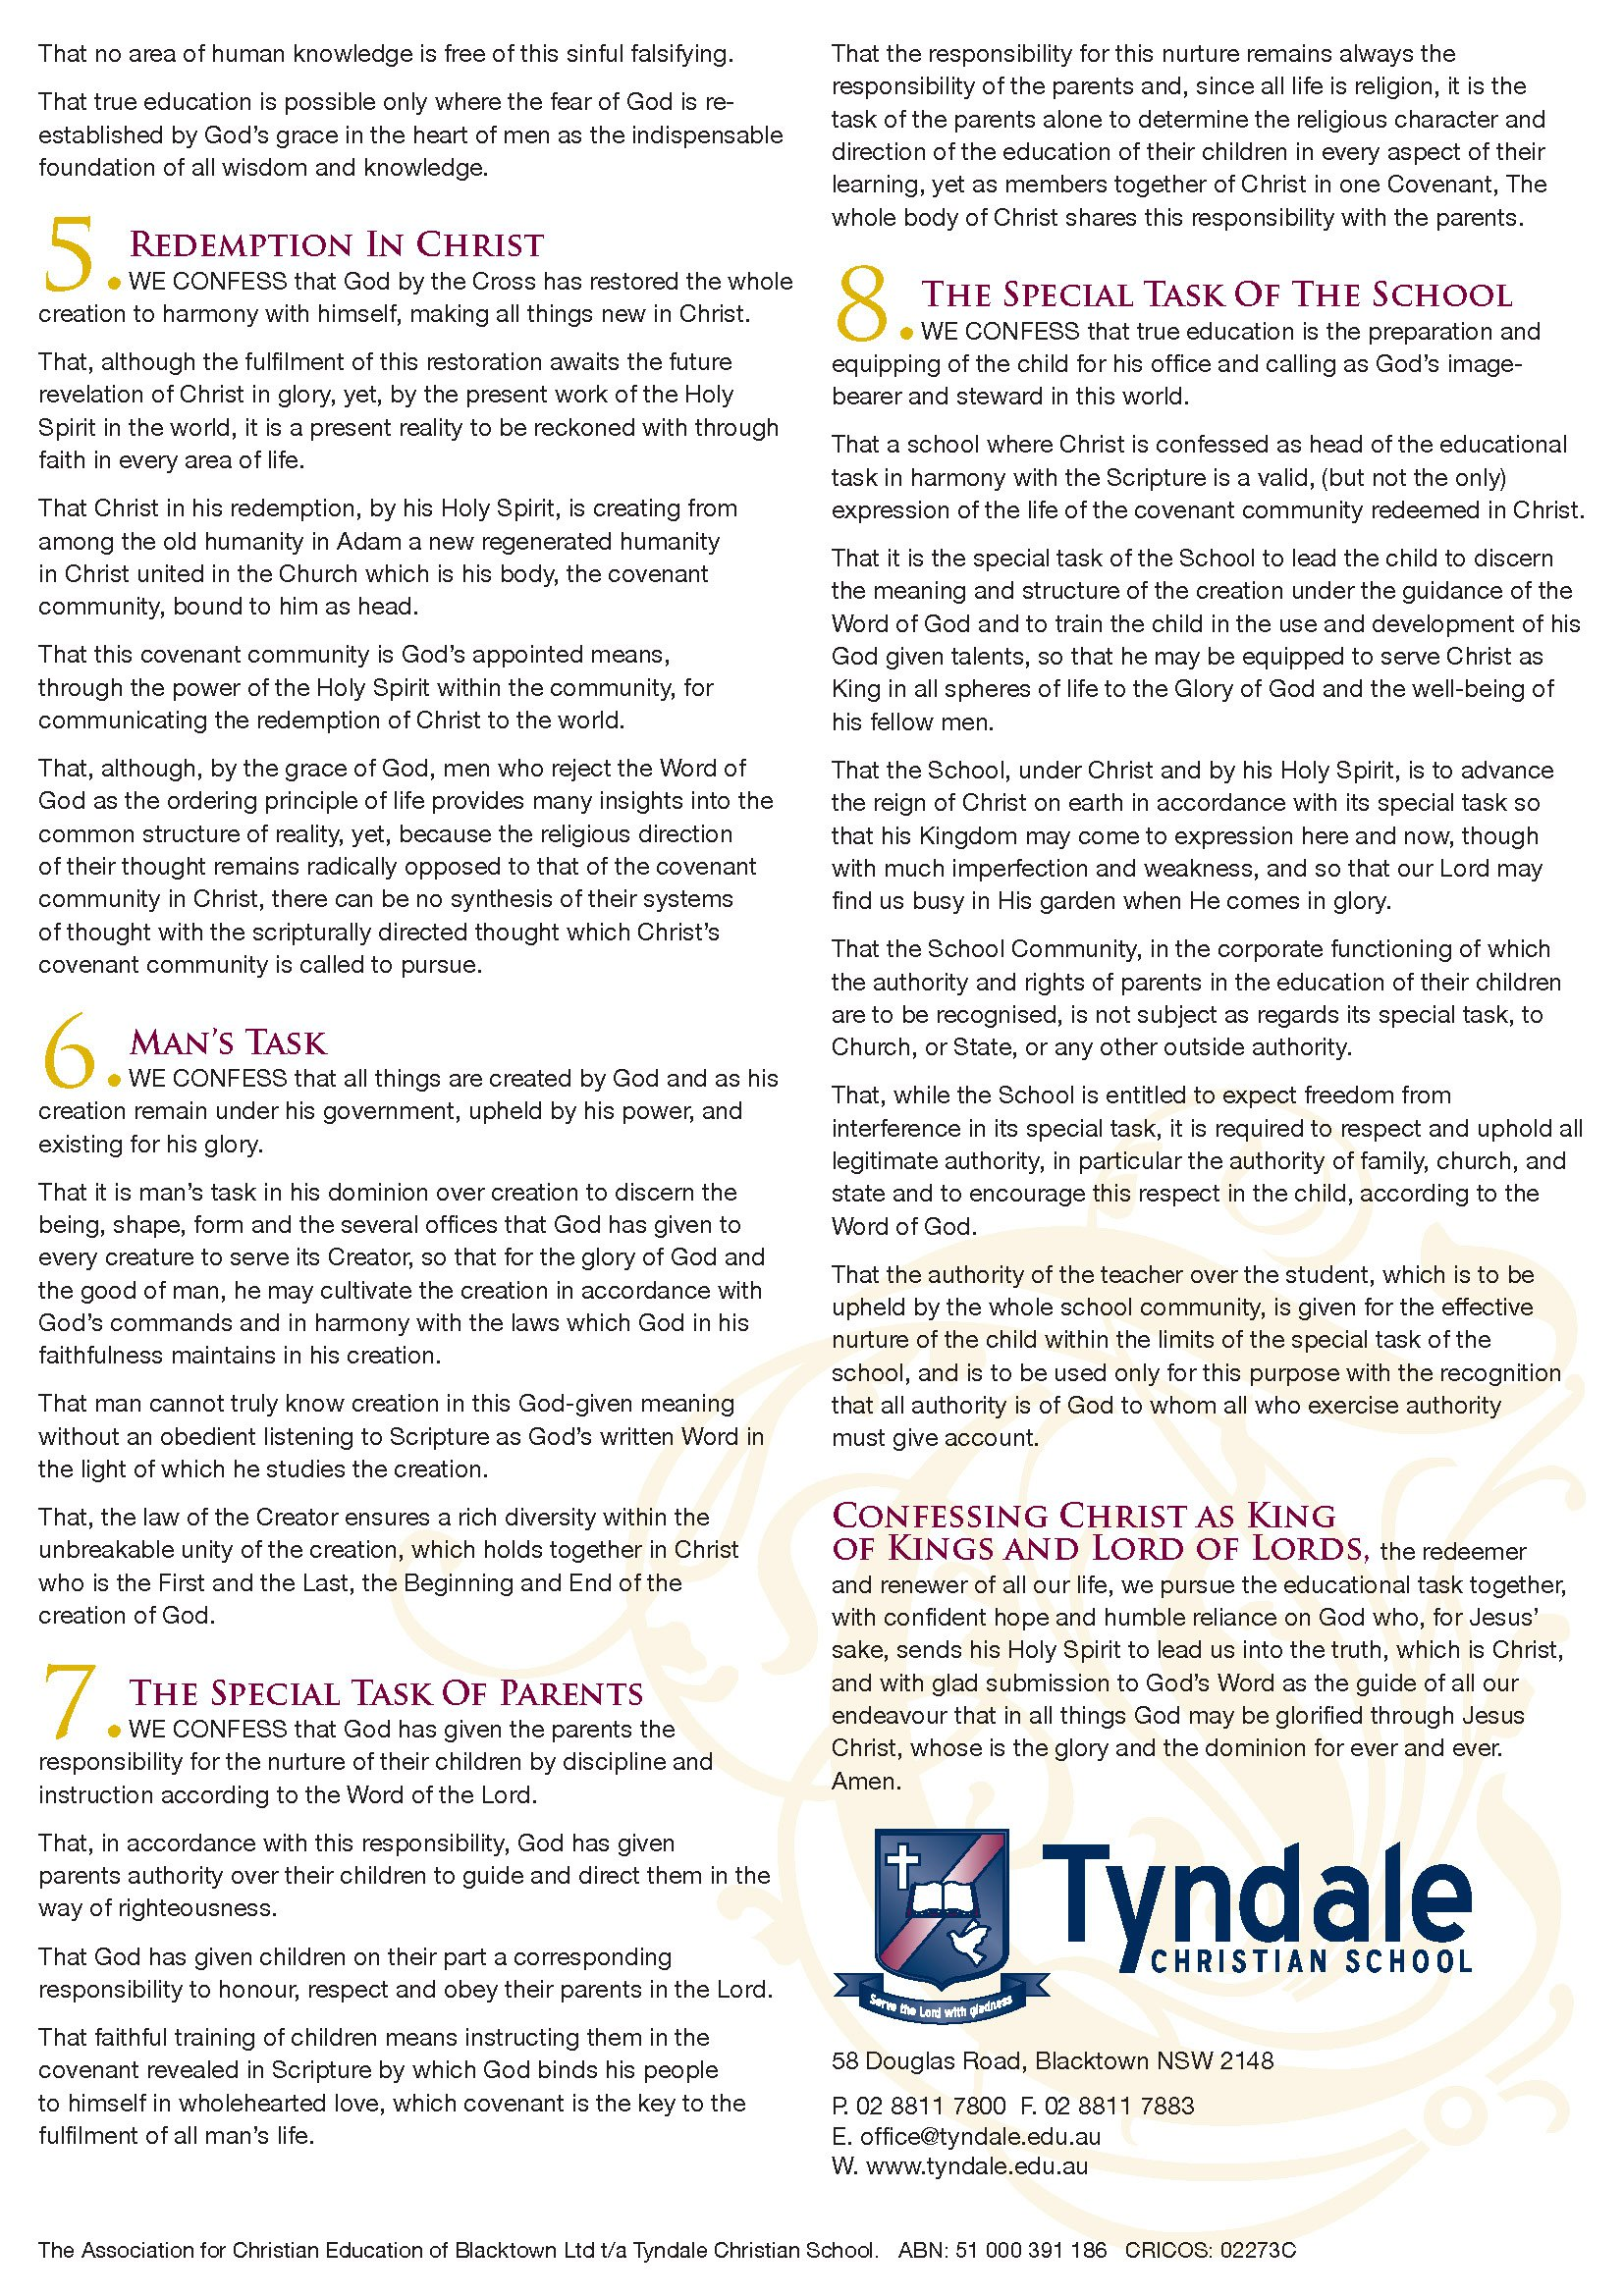 Educational Creed - Tyndale